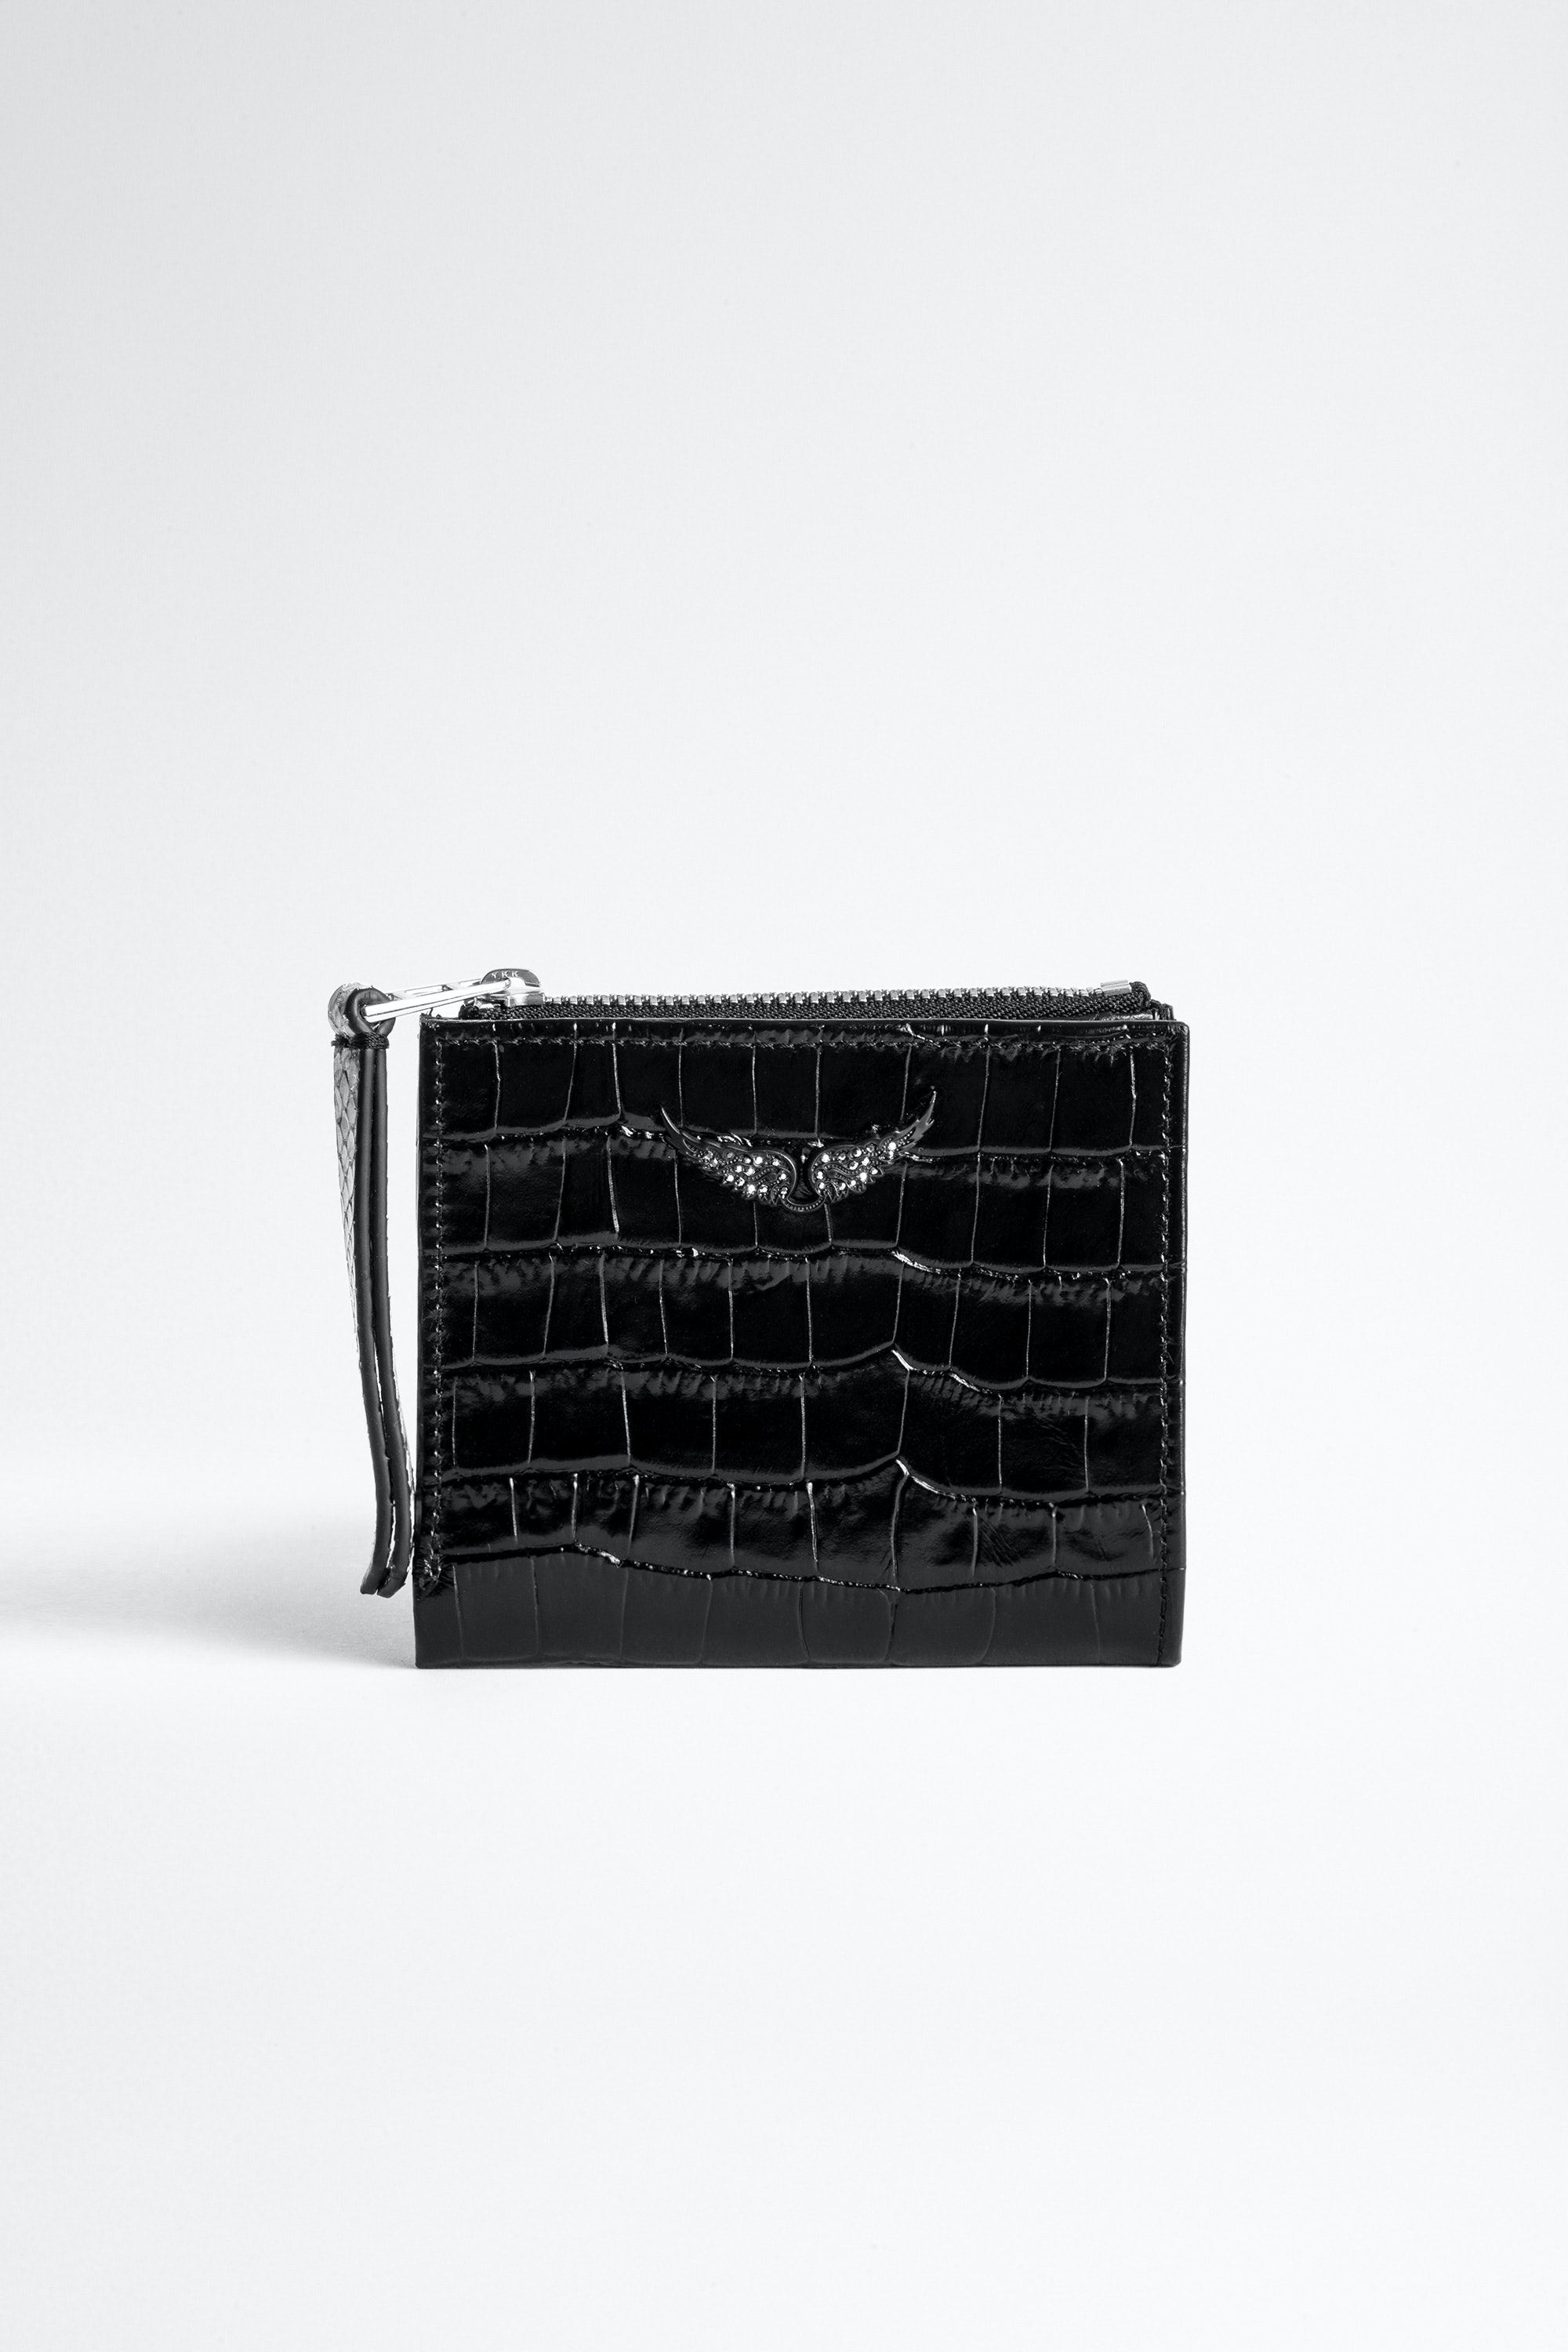 ZV Fold Croco Coin Purse